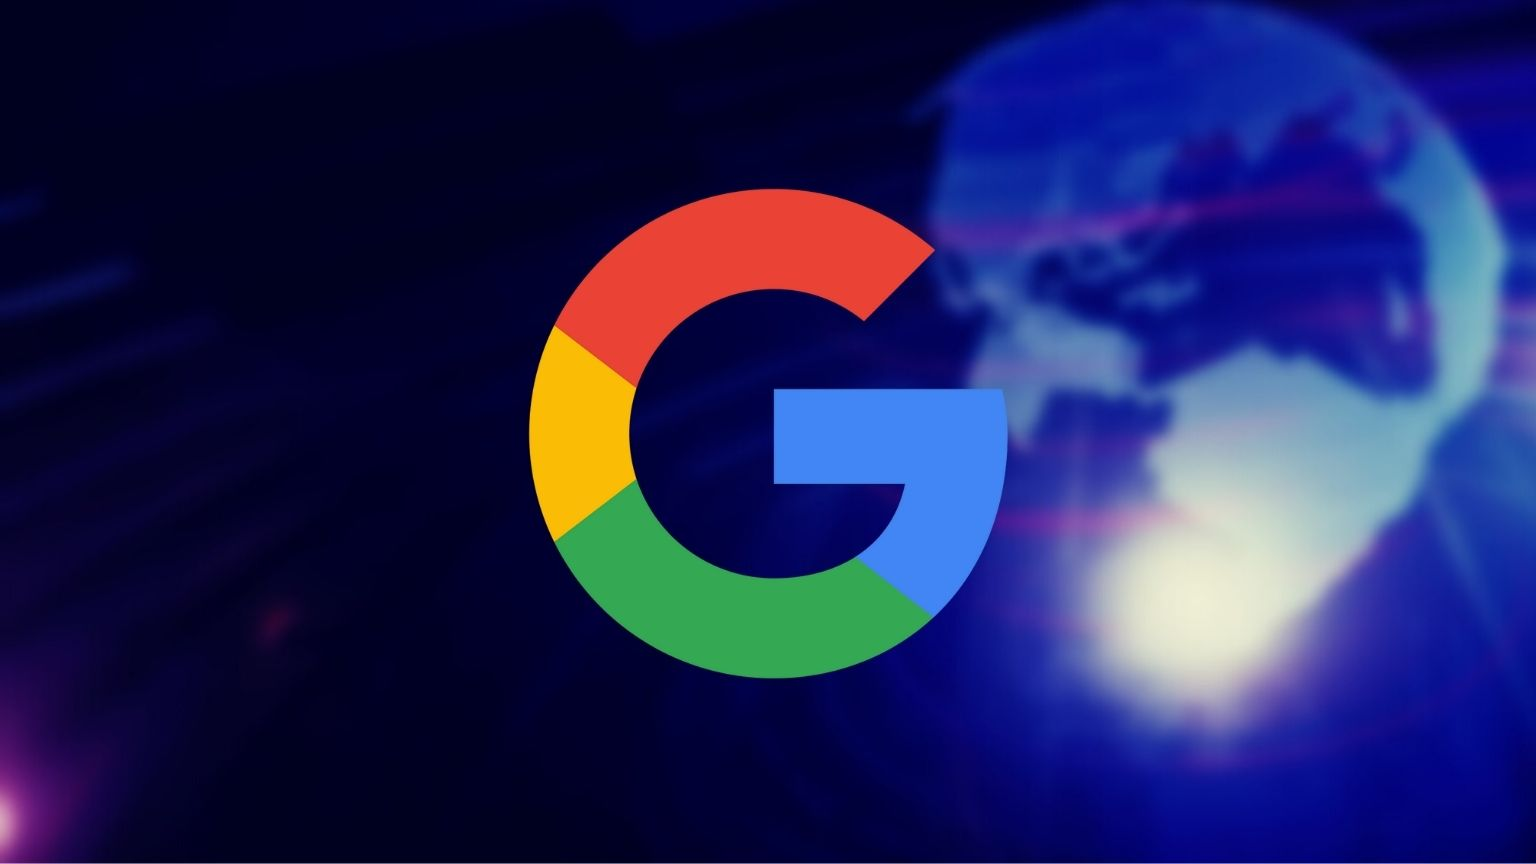 """Google wants to curate more news and add """"context"""""""